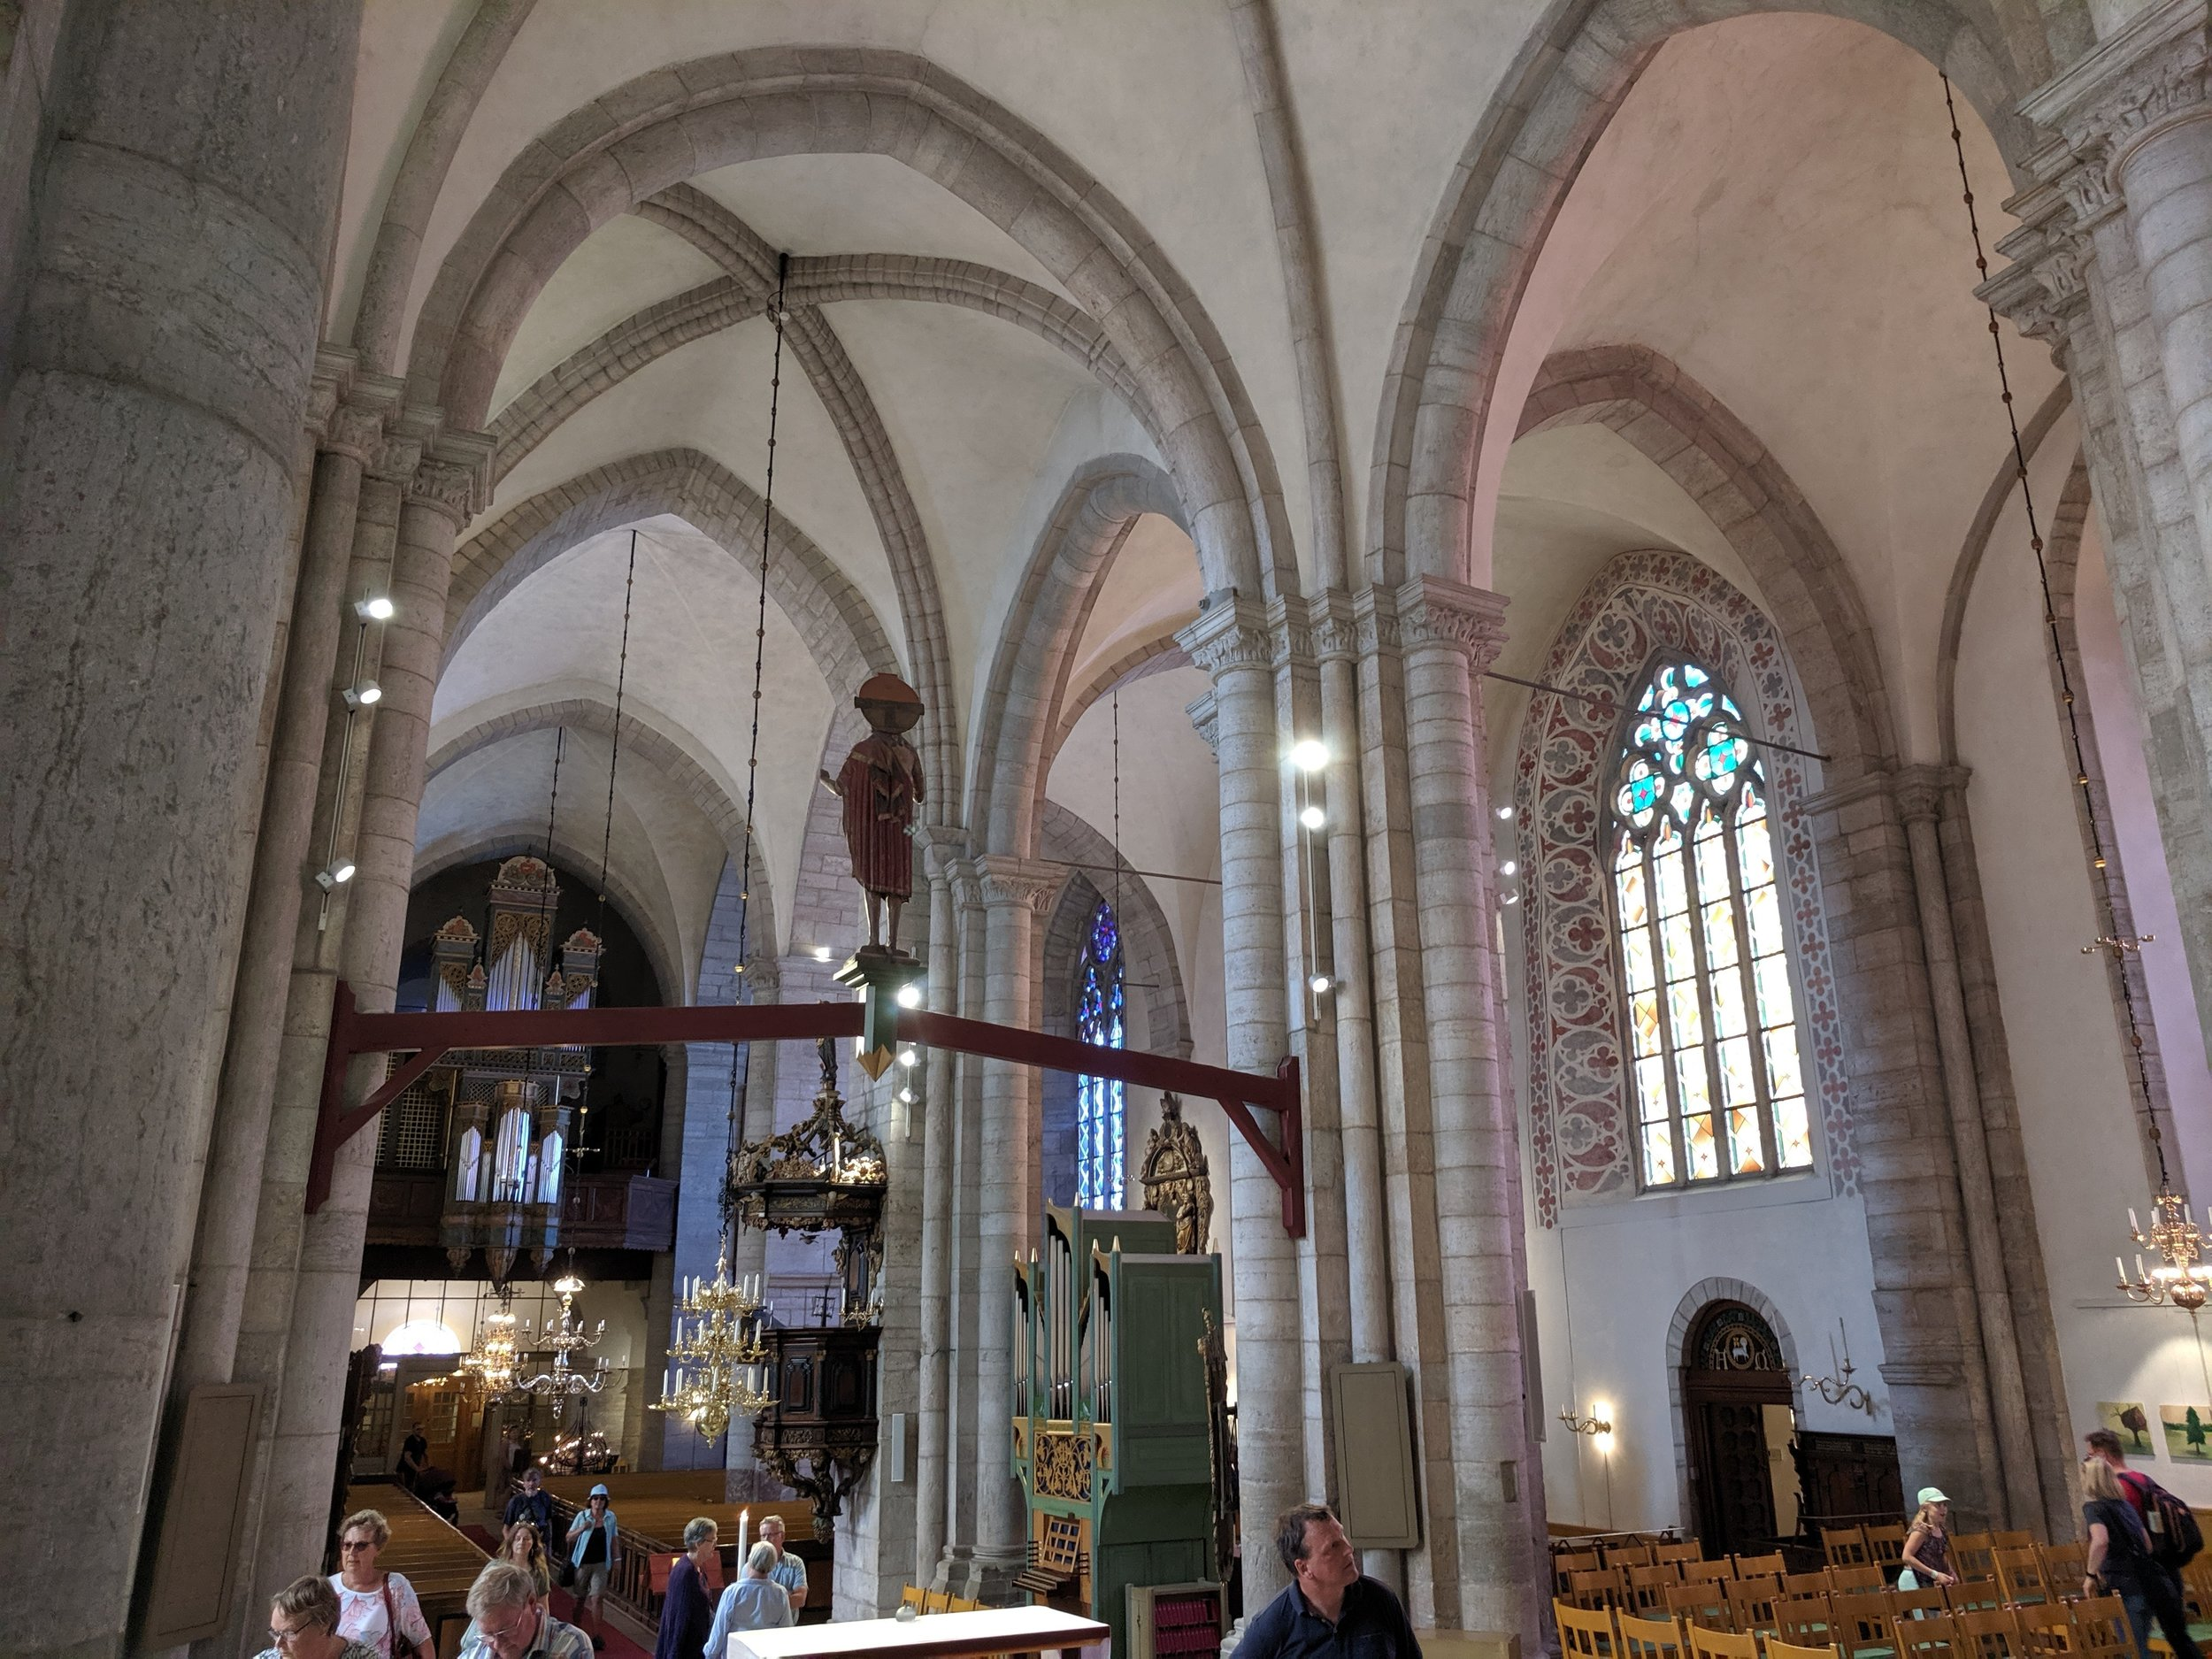 Renovated Swedish Church in VIsby - a tourist attraction but spiritually dead